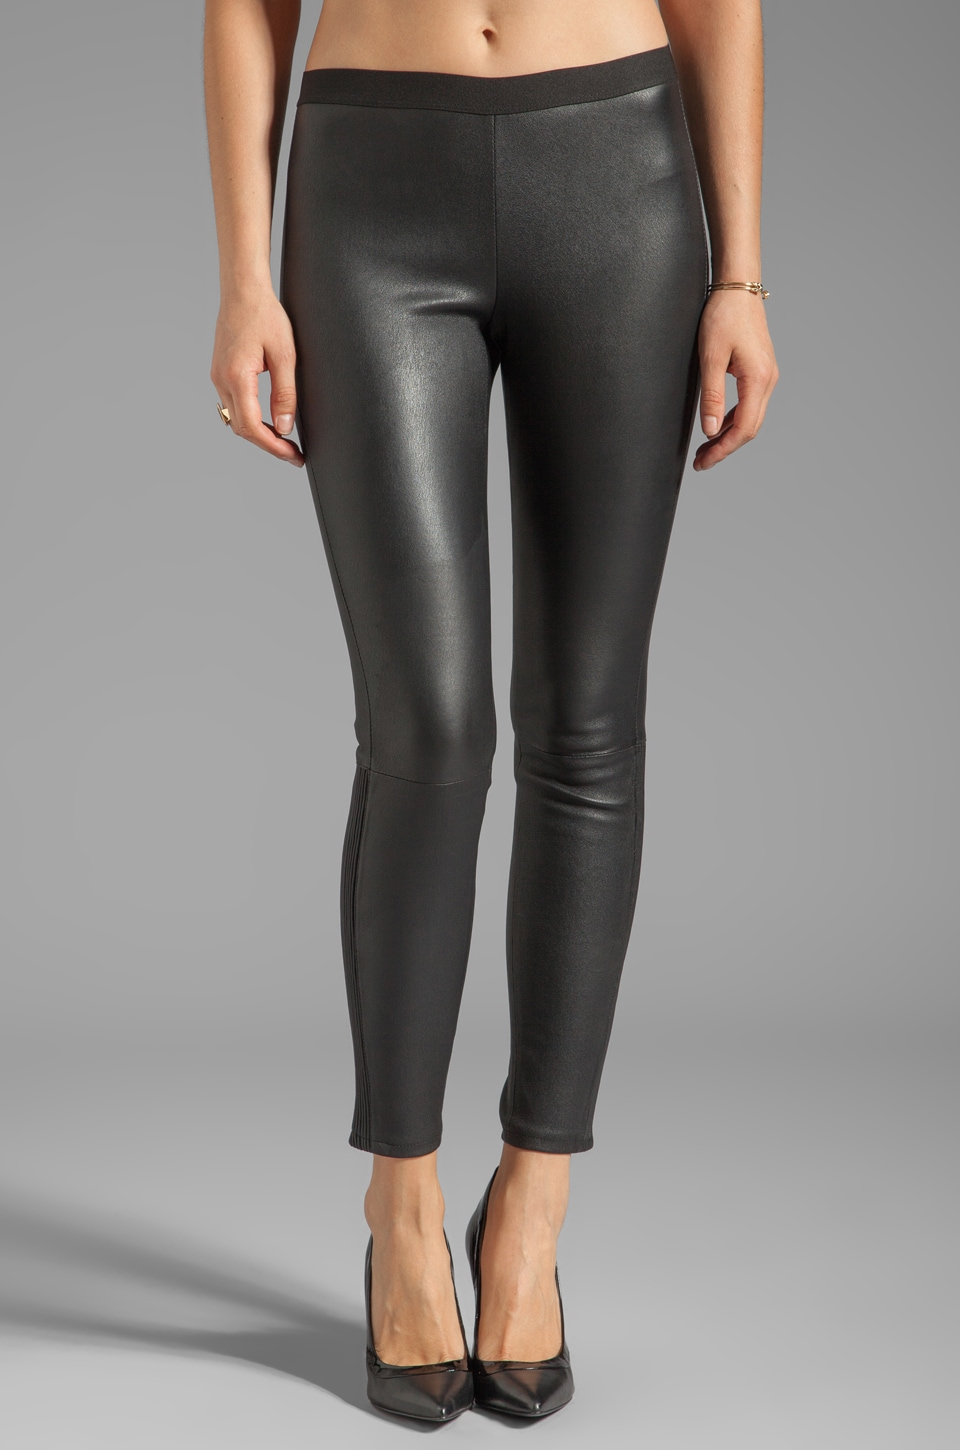 Marc by Marc Jacobs Lena Leather Pant in Black